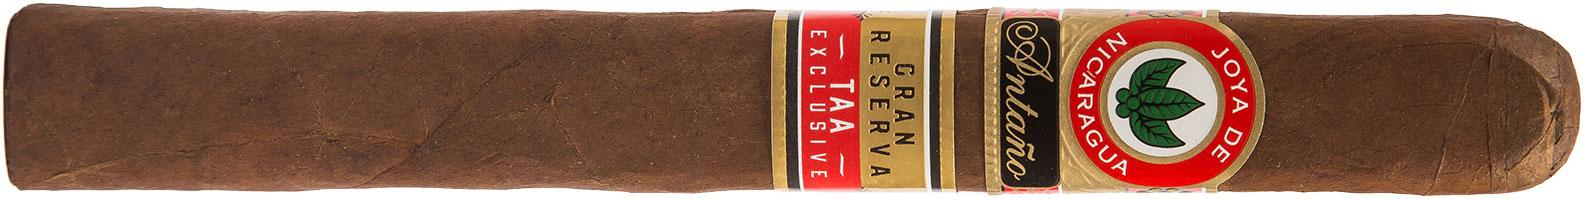 Slightly shorter, but thicker, than a standard Churchill, the Antaño Gran Reserva Presidente measures 6 3/4 inches by 50 ring gauge.